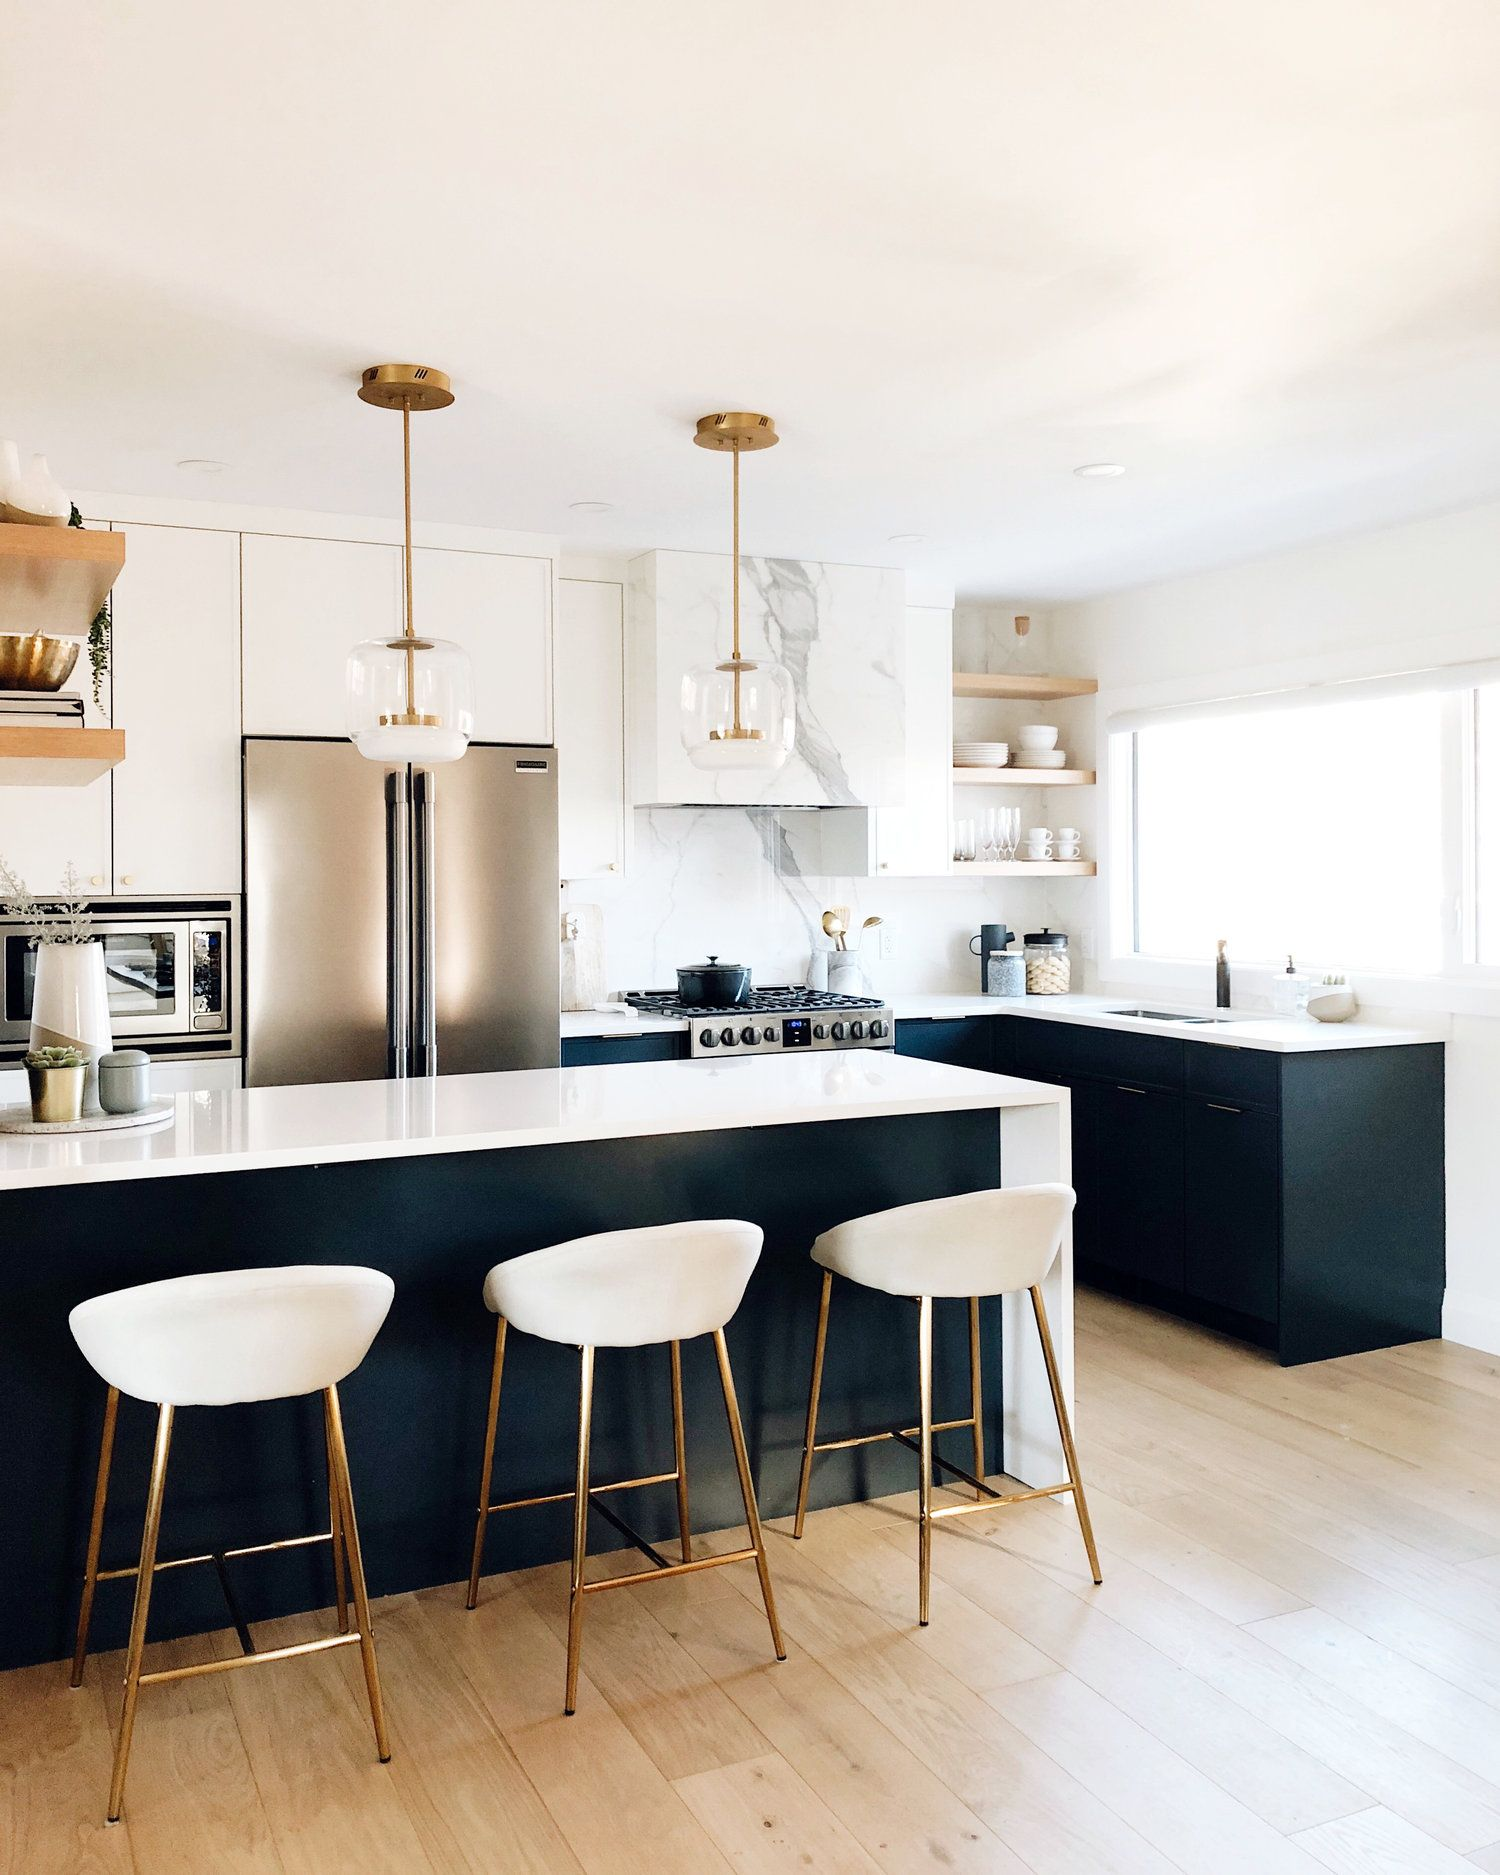 Nyla Free Designs Inc Property Brothers Growing Boys Grander House Before After Grand Homes Property Brothers Kitchen Kitchen Plans